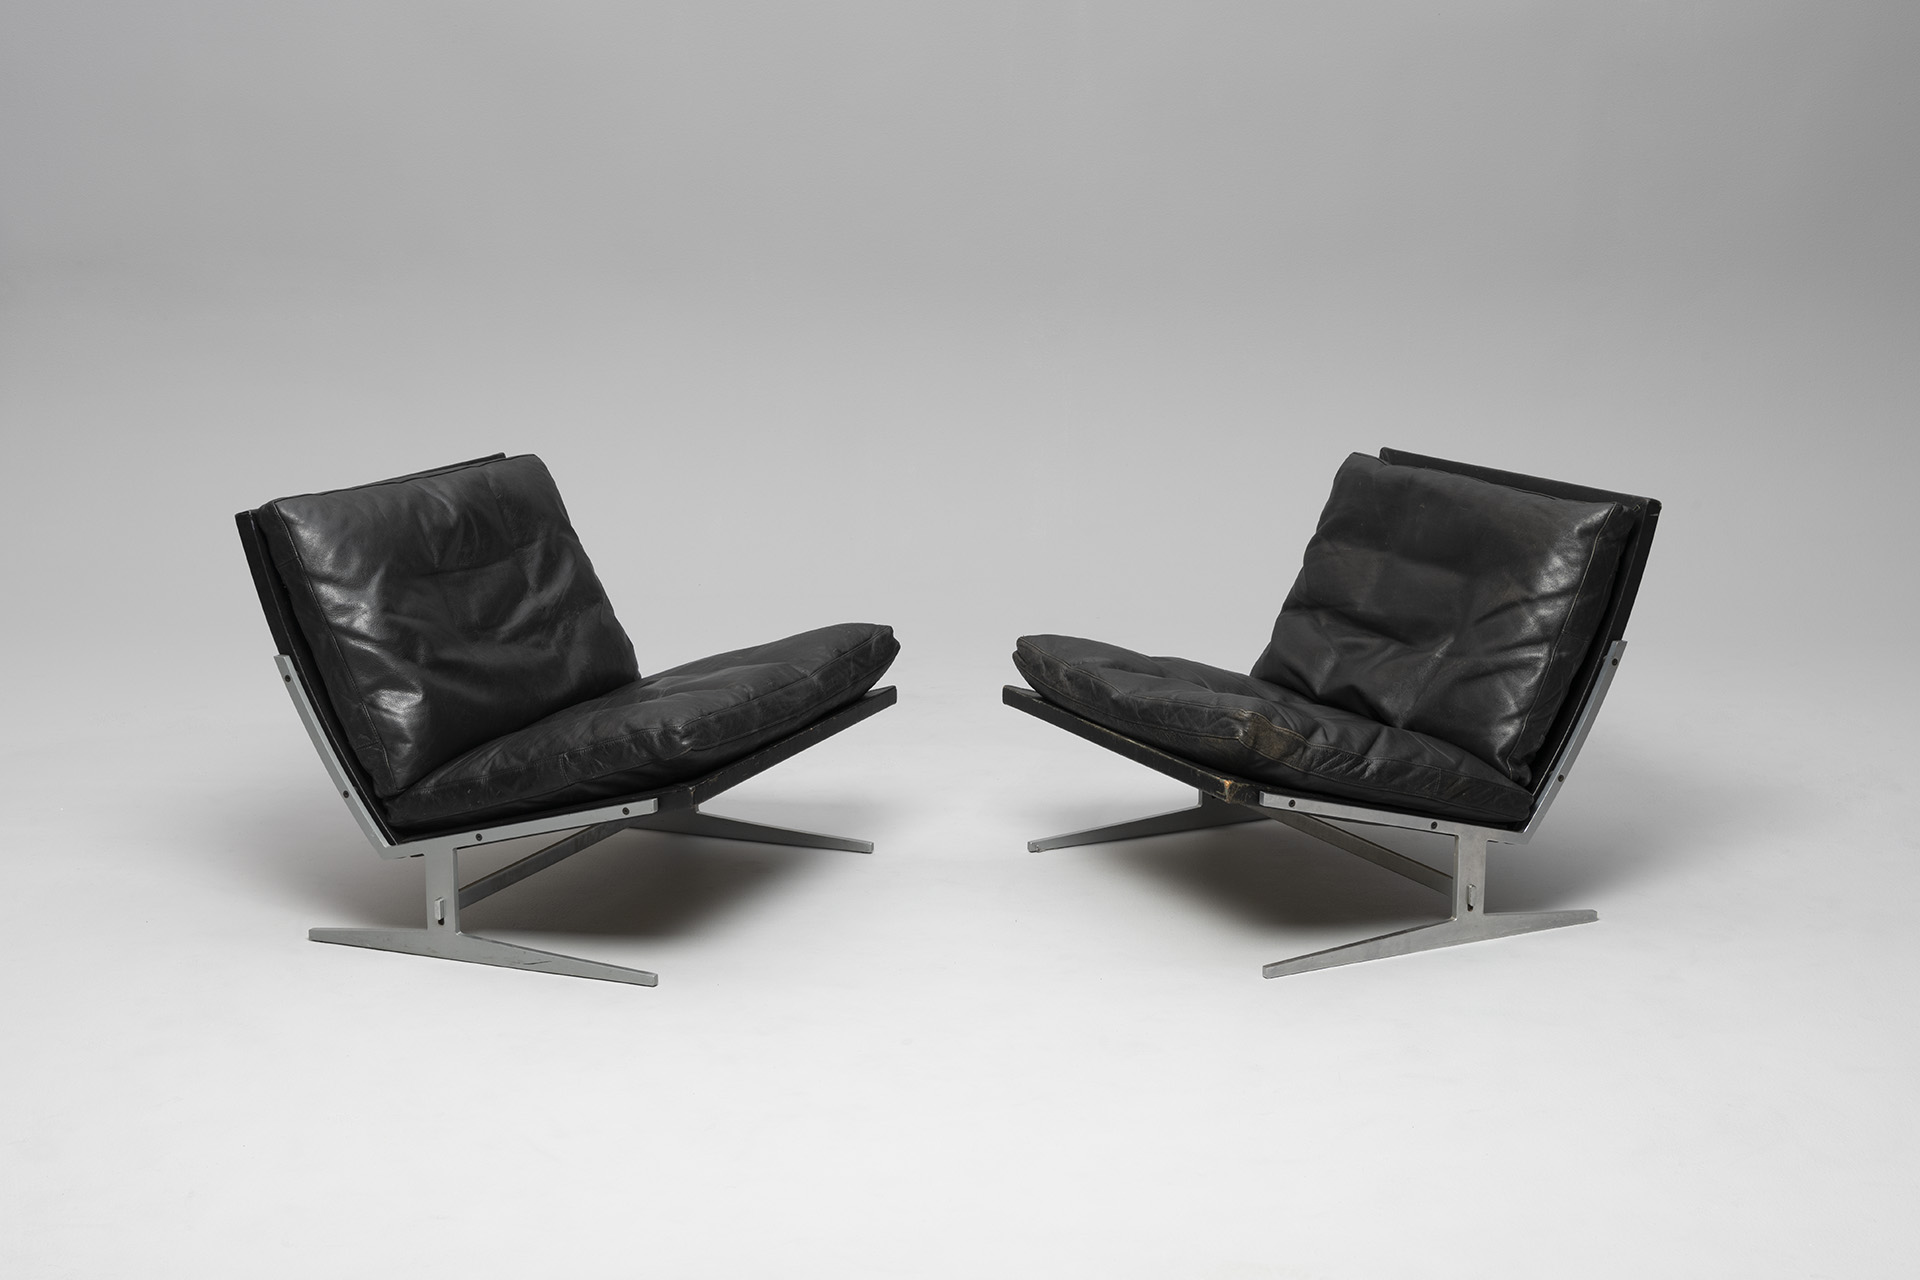 Pair of Lounge Chairs, Model no. BO 561